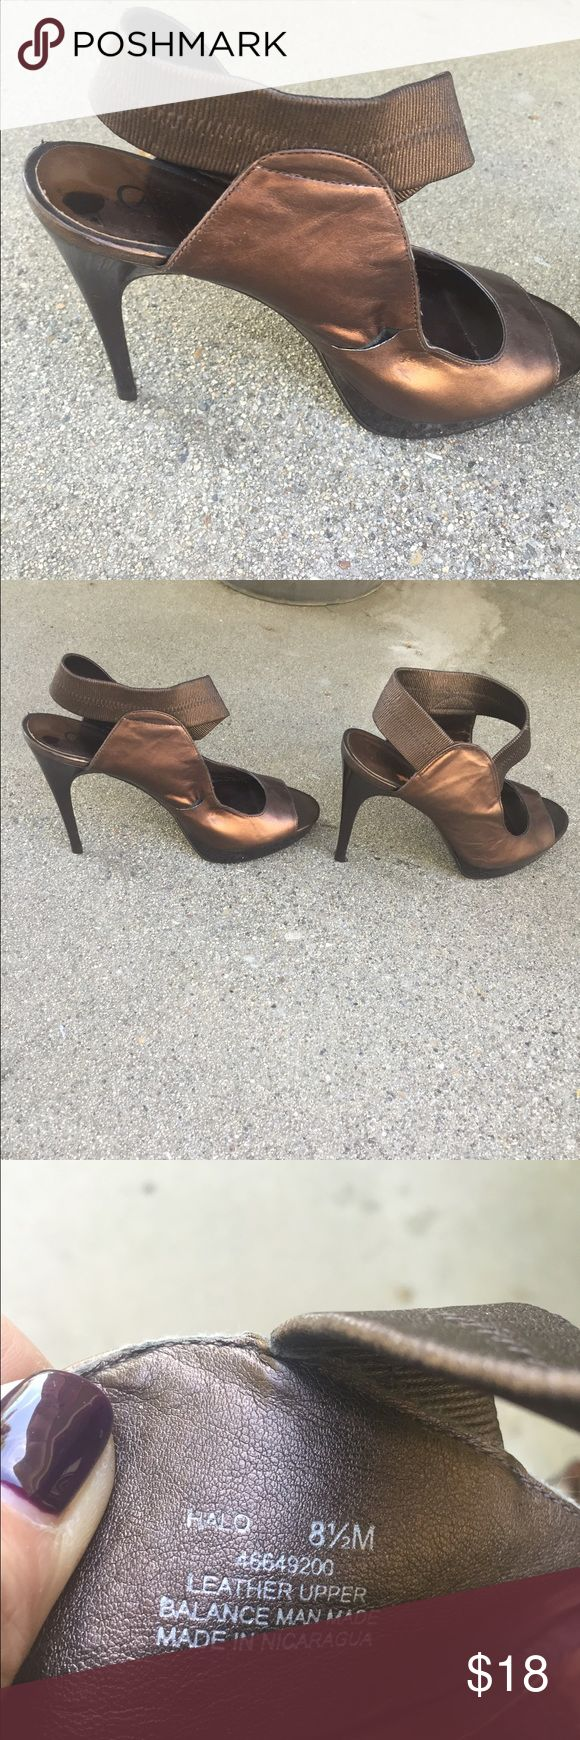 Carlos Santana Brown Copper Strappy Heels NWOT Never Worn size 8.5 these cute Strappy heels are copper brown. Great for Fall with a dress pant or dress . Style is Halo. Carlos Santana Shoes Heels